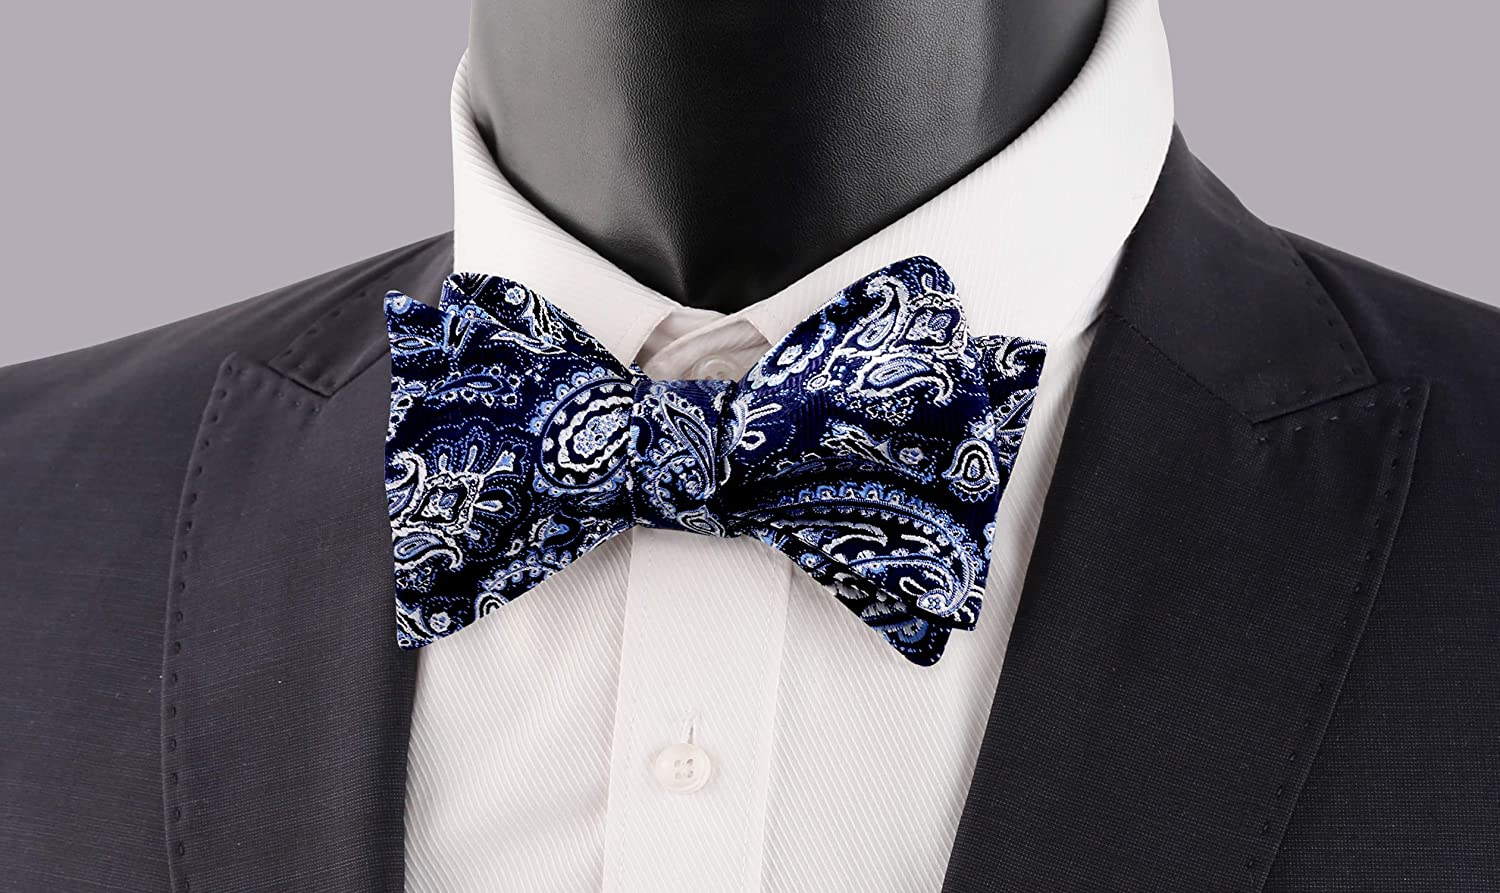 Alizeal Mens Fashion Adjustable Self Bowties with Pocket Square Set